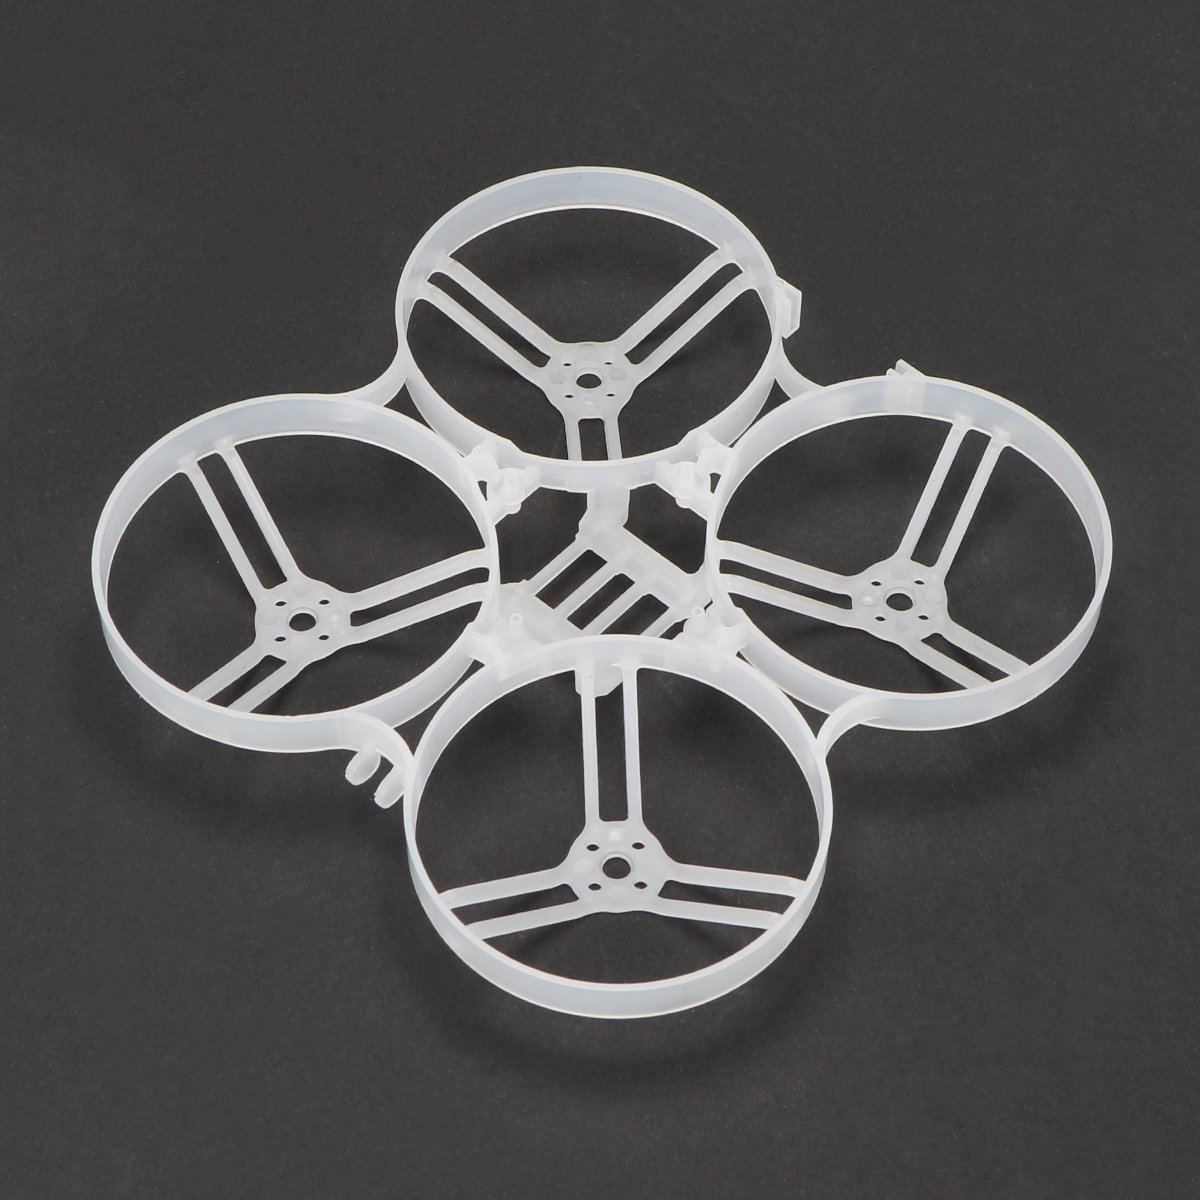 BETA FPV 85X Micro Brushless Whoop Frame(White)